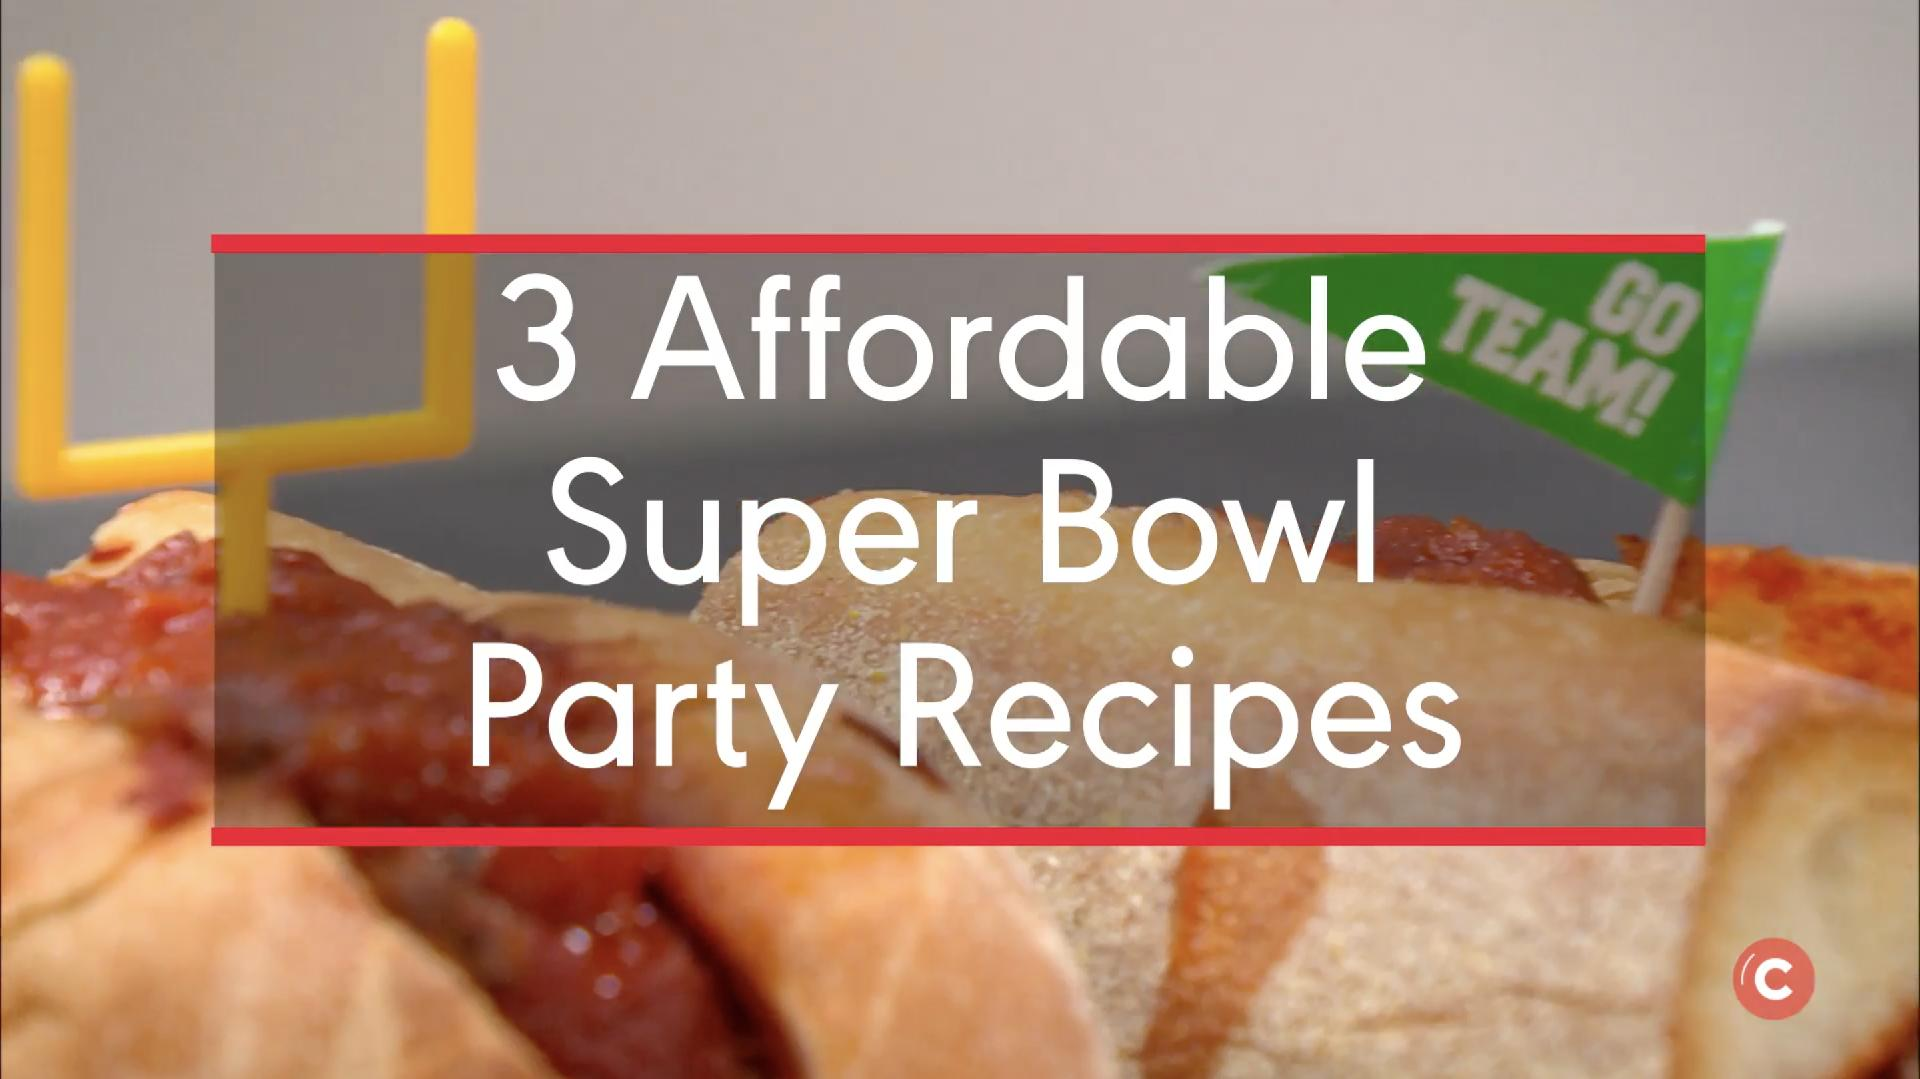 3 Affordable Super Bowl Party Recipes